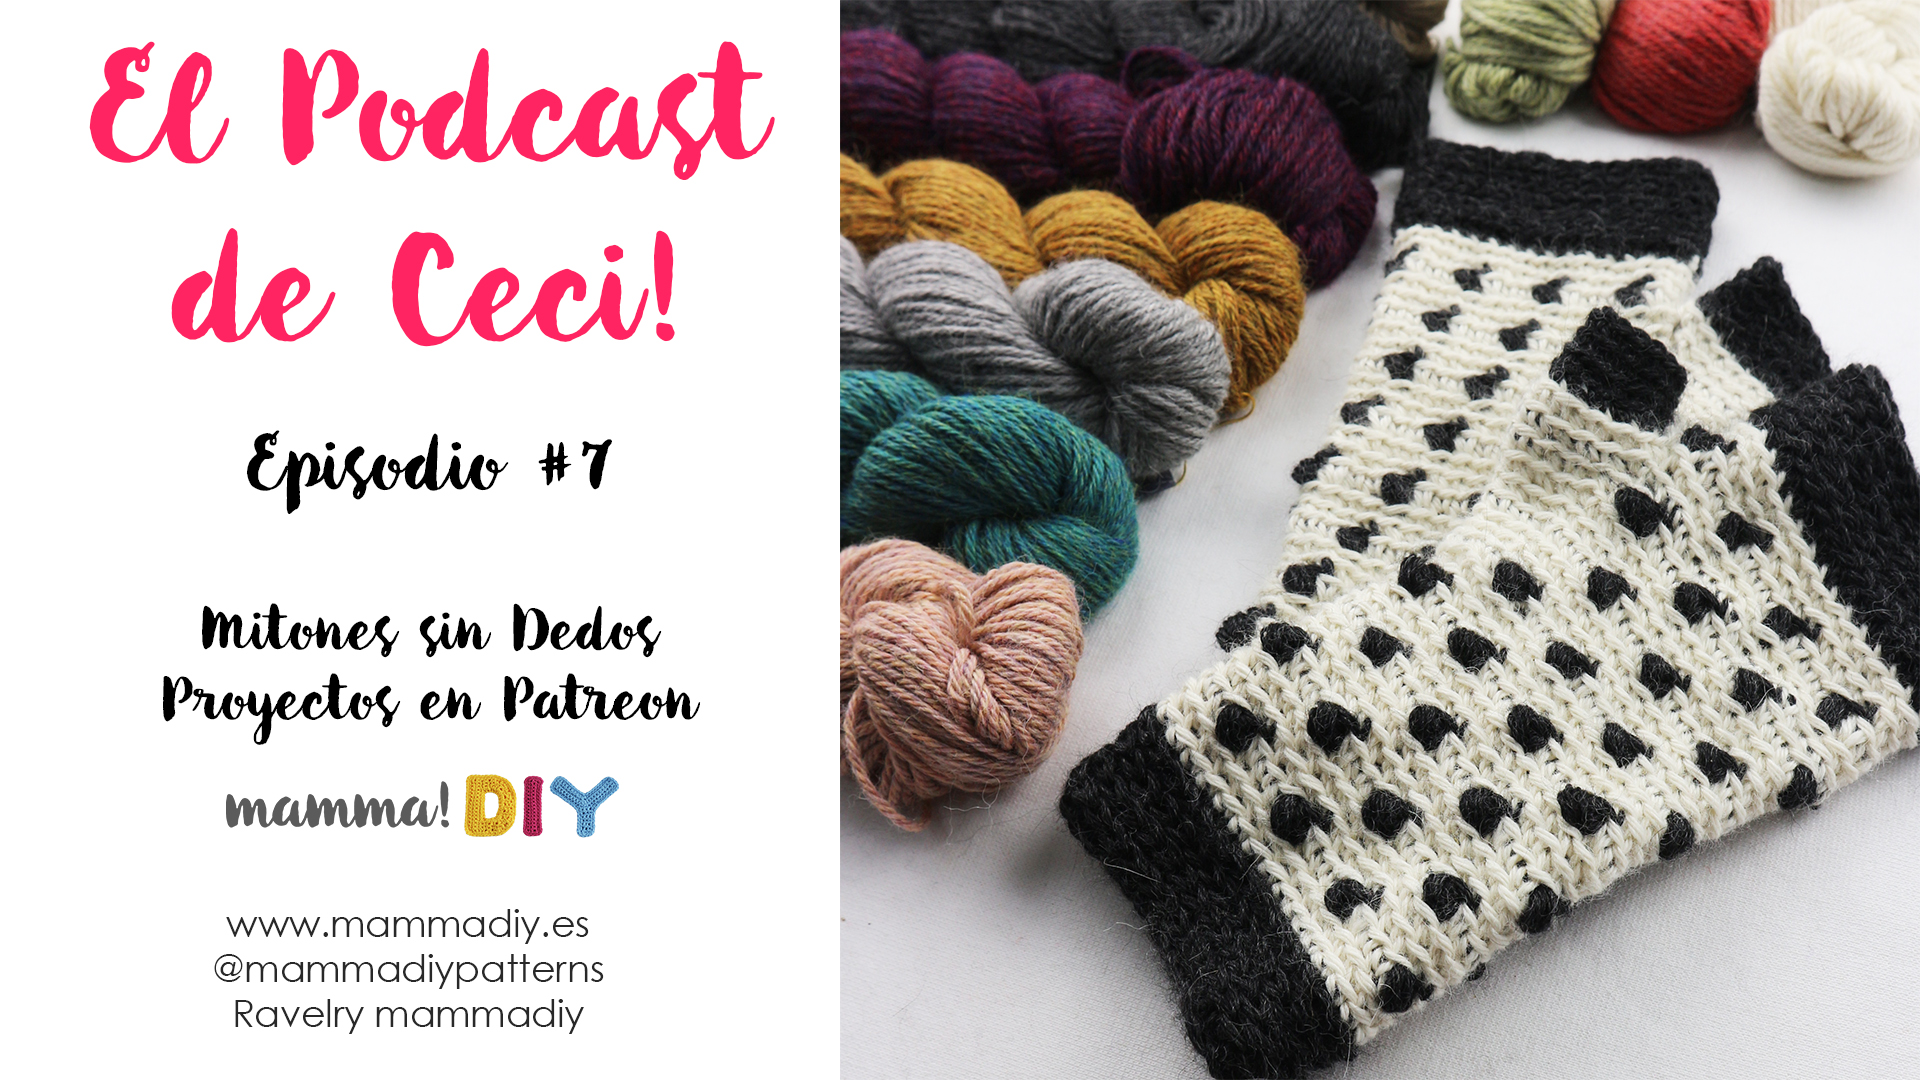 el podcast de ceci mammadiypatterns